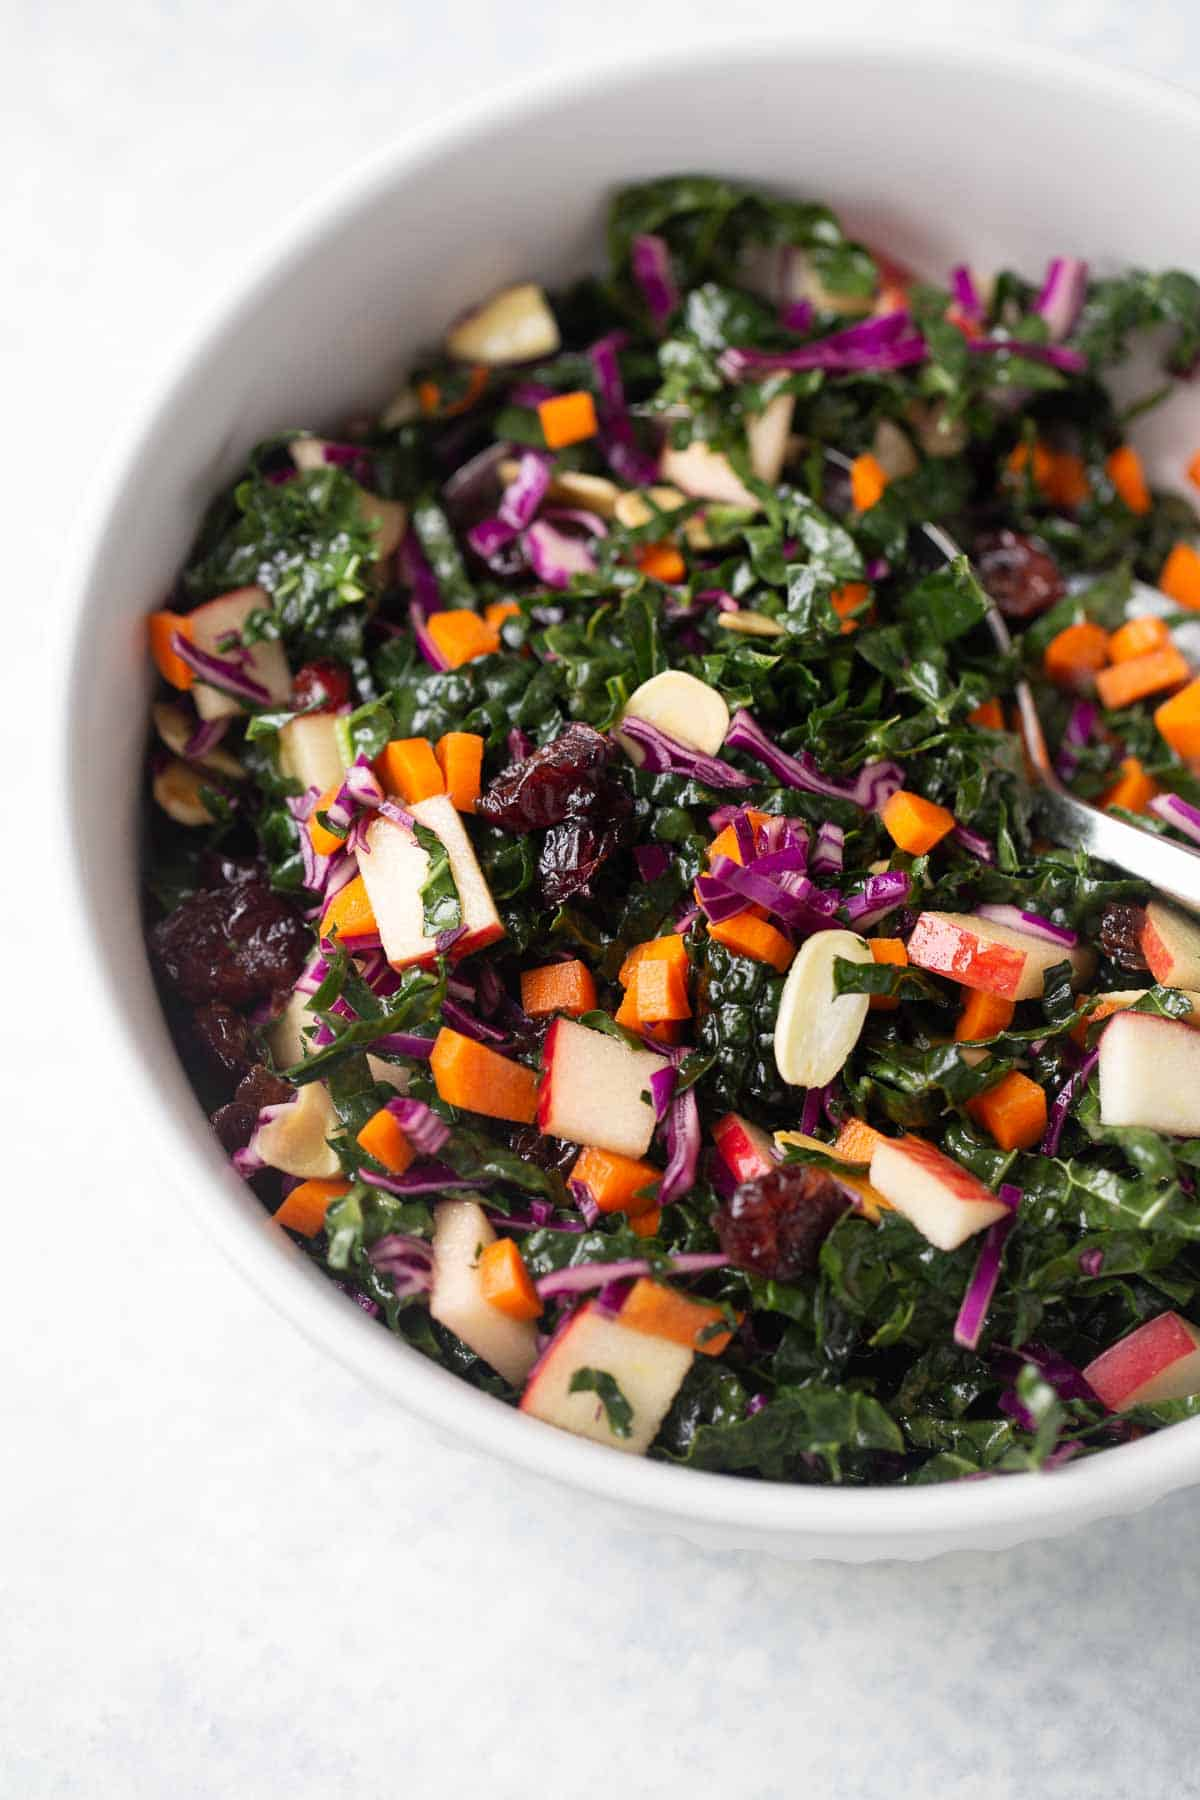 Kale Salad with Cranberries in a serving bowl